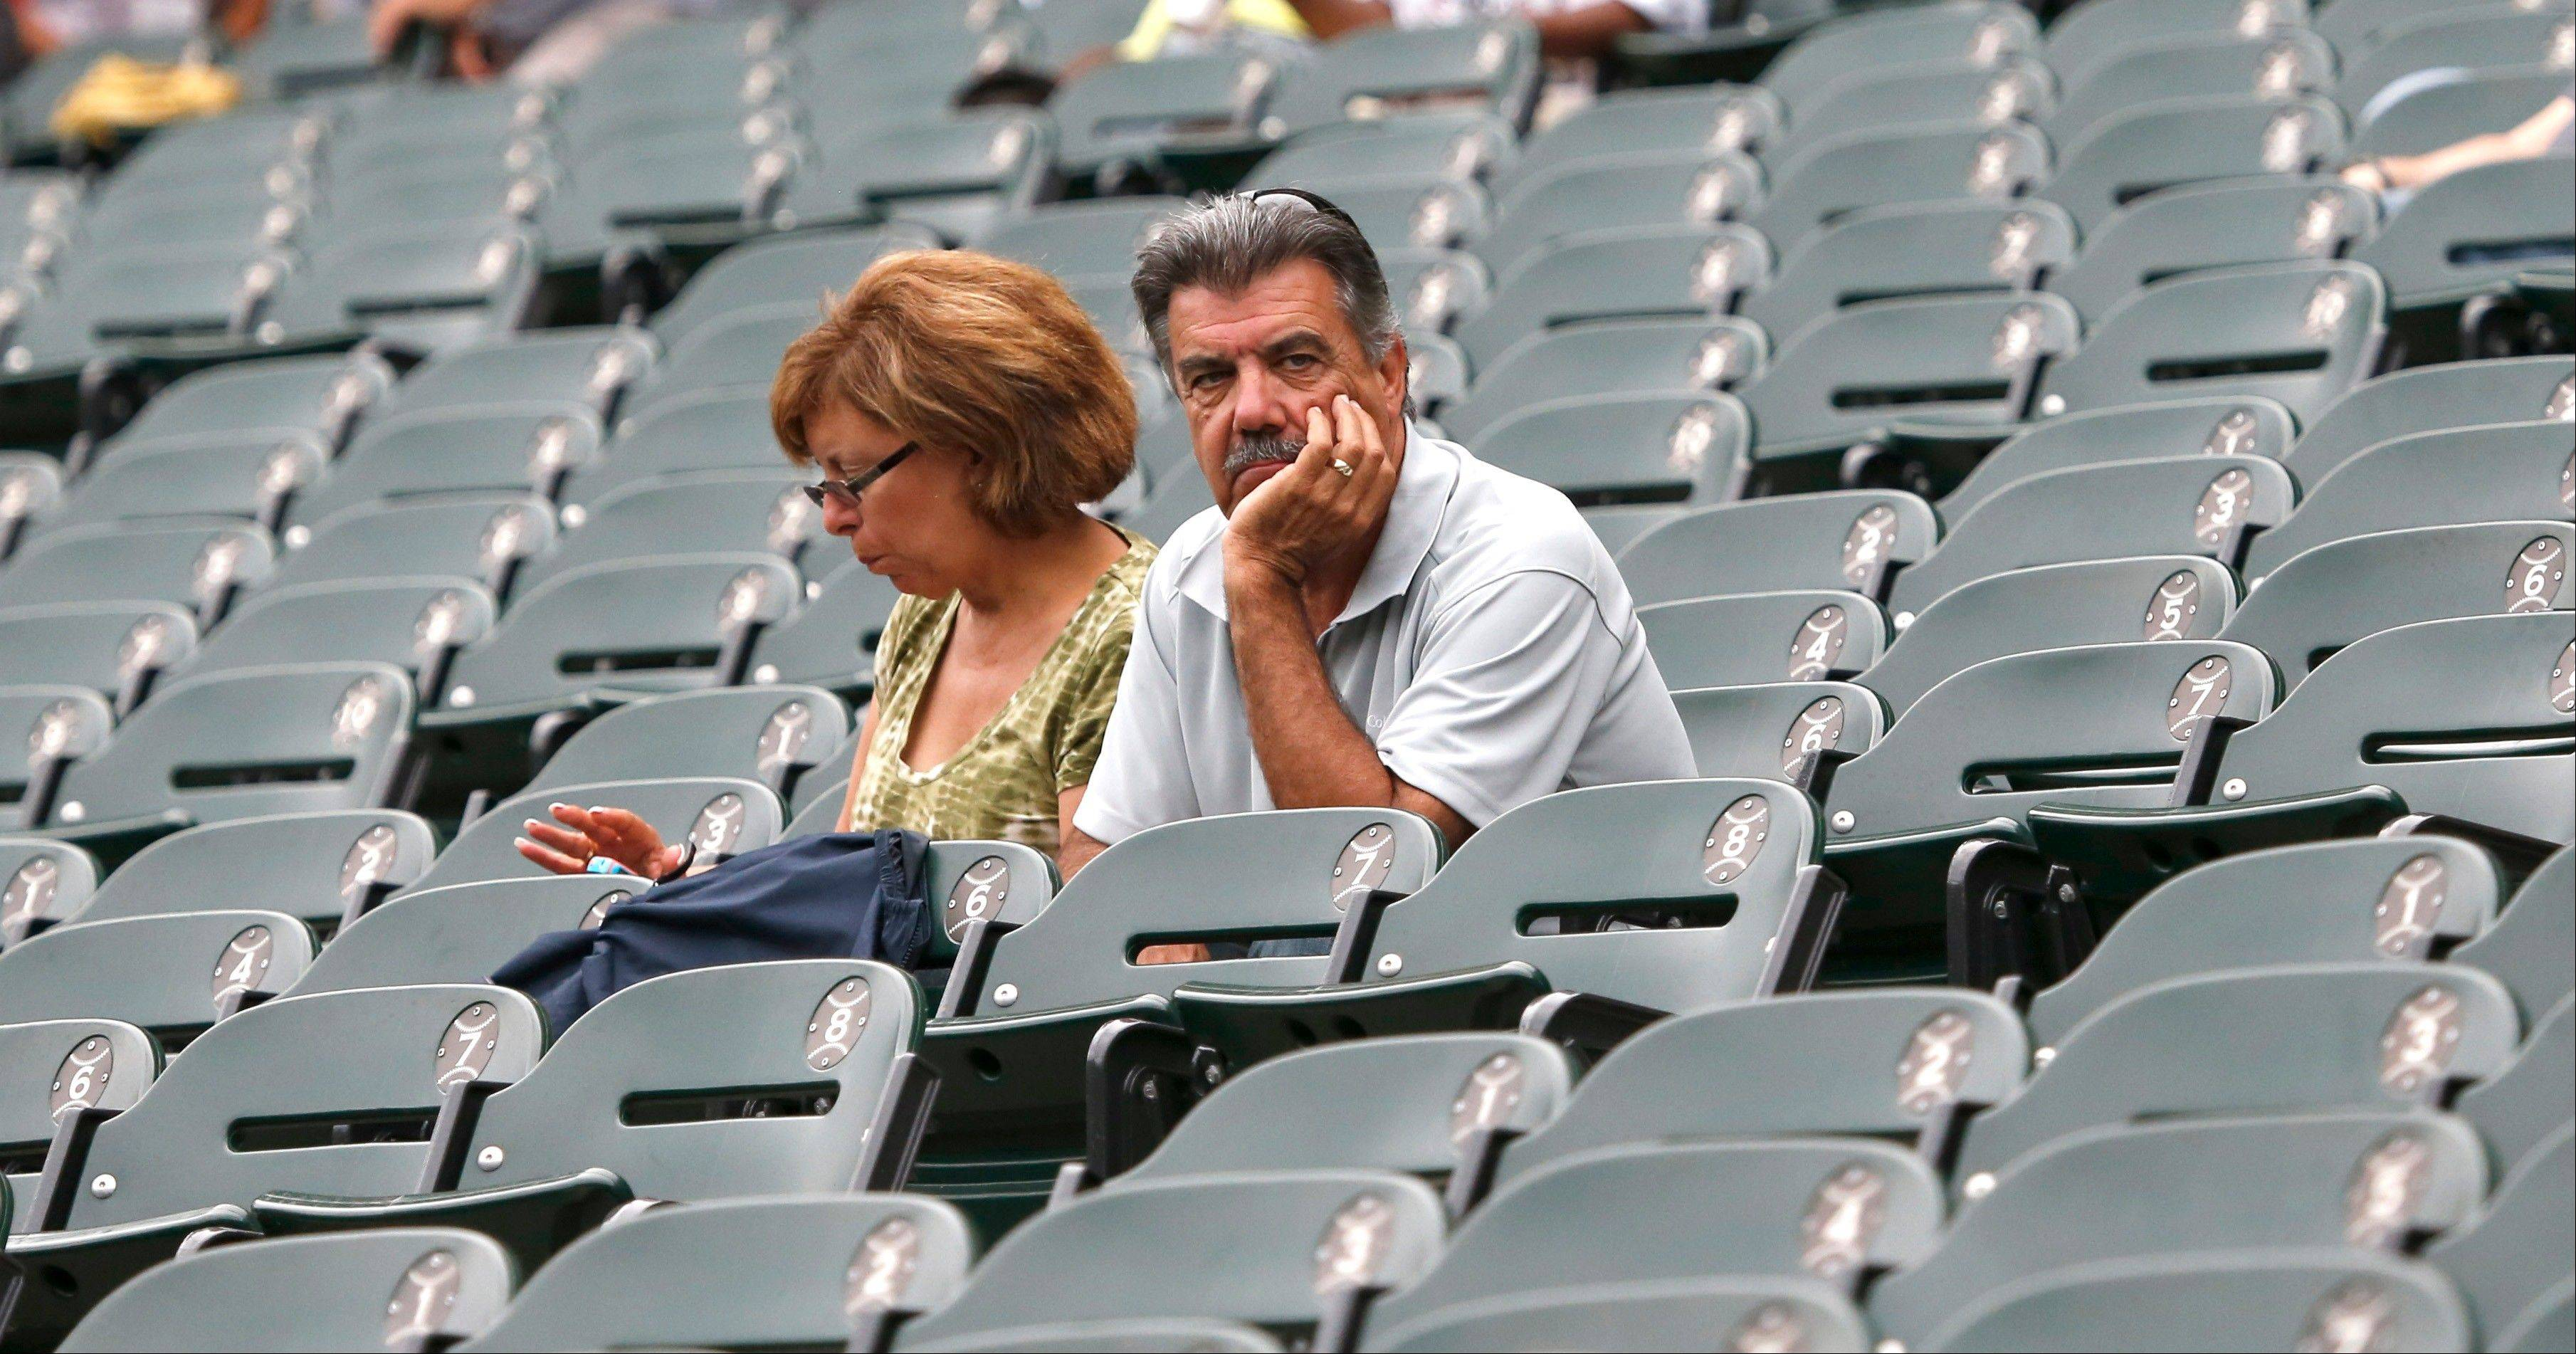 A fan sits head in hand during a game between the Chicago White Sox and Minnesota Twins in Chicago. The White Sox have seen their attendance drop for the seventh straight season since a high of 2.9 million in 2006.